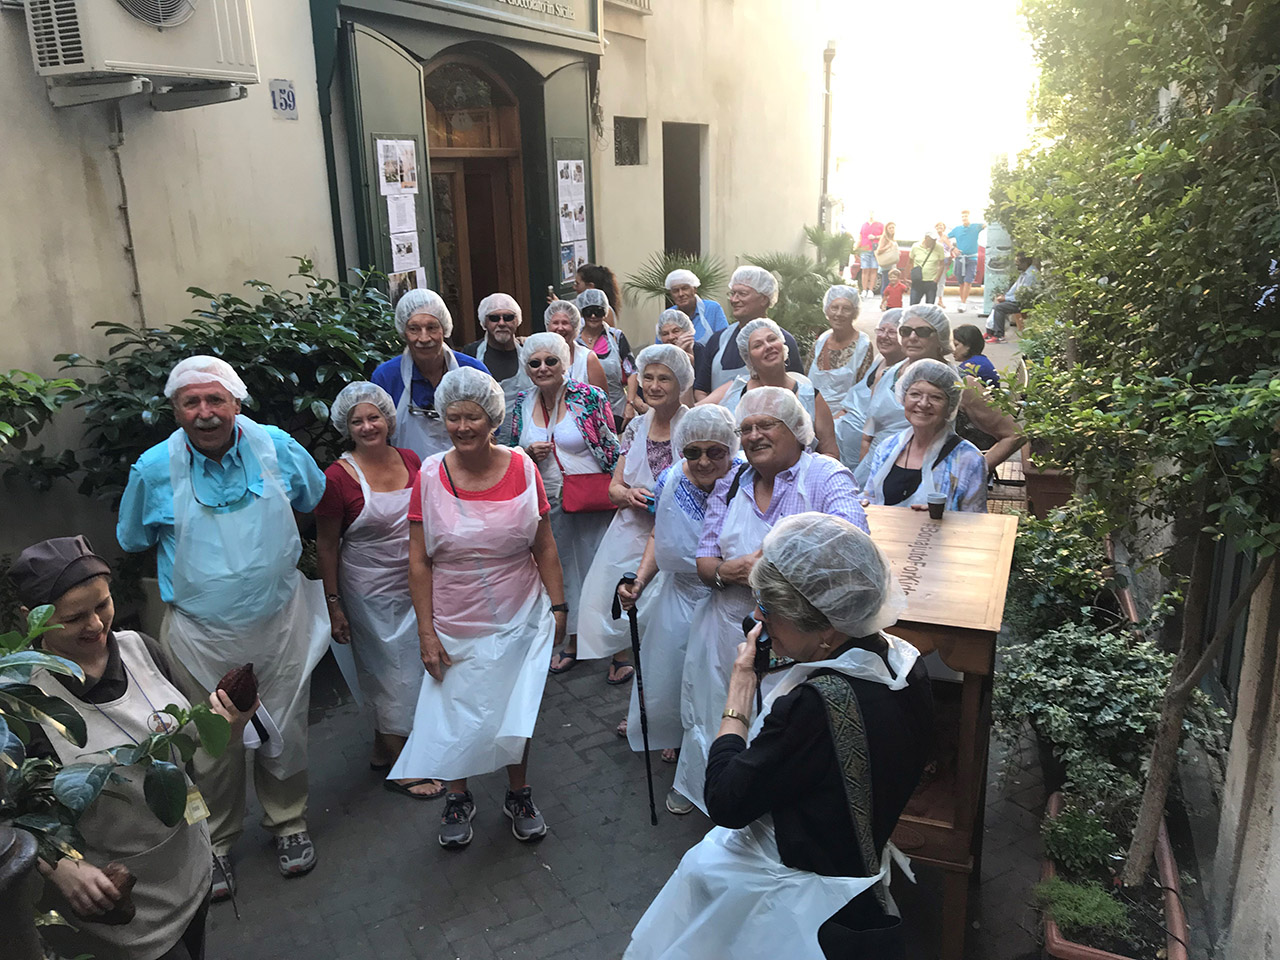 Travelers in group dress with white plastic aprons and hair caps